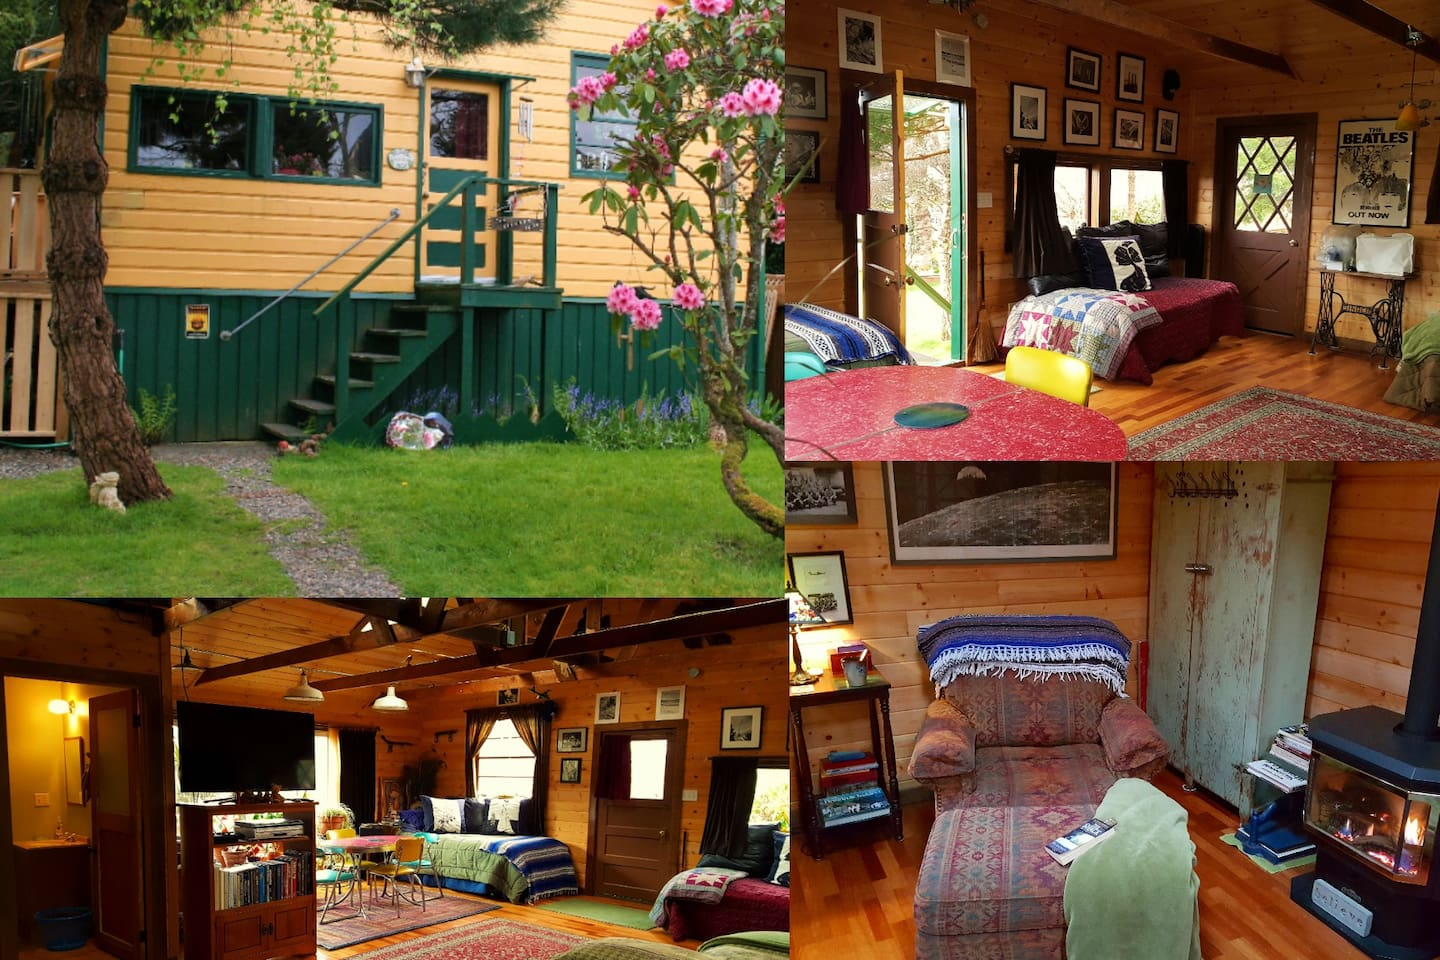 Cozy, secluded, private, roomy, comfy. The feel of a being in a cabin right in the city!